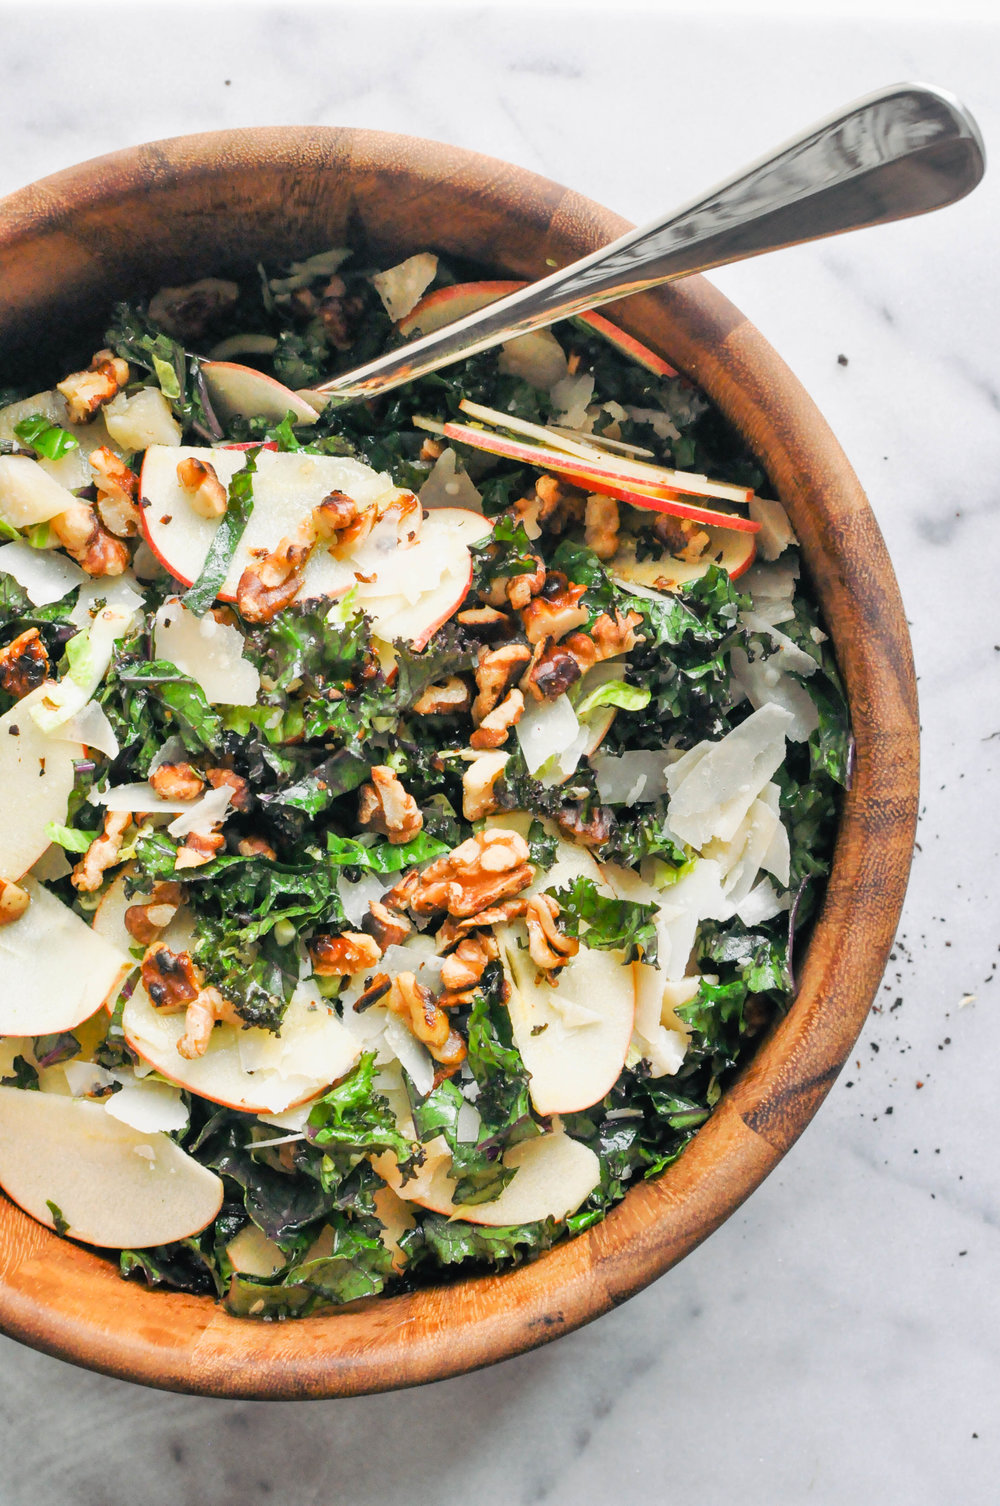 Shredded Brussels Sprouts, Kale, and Apple Salad